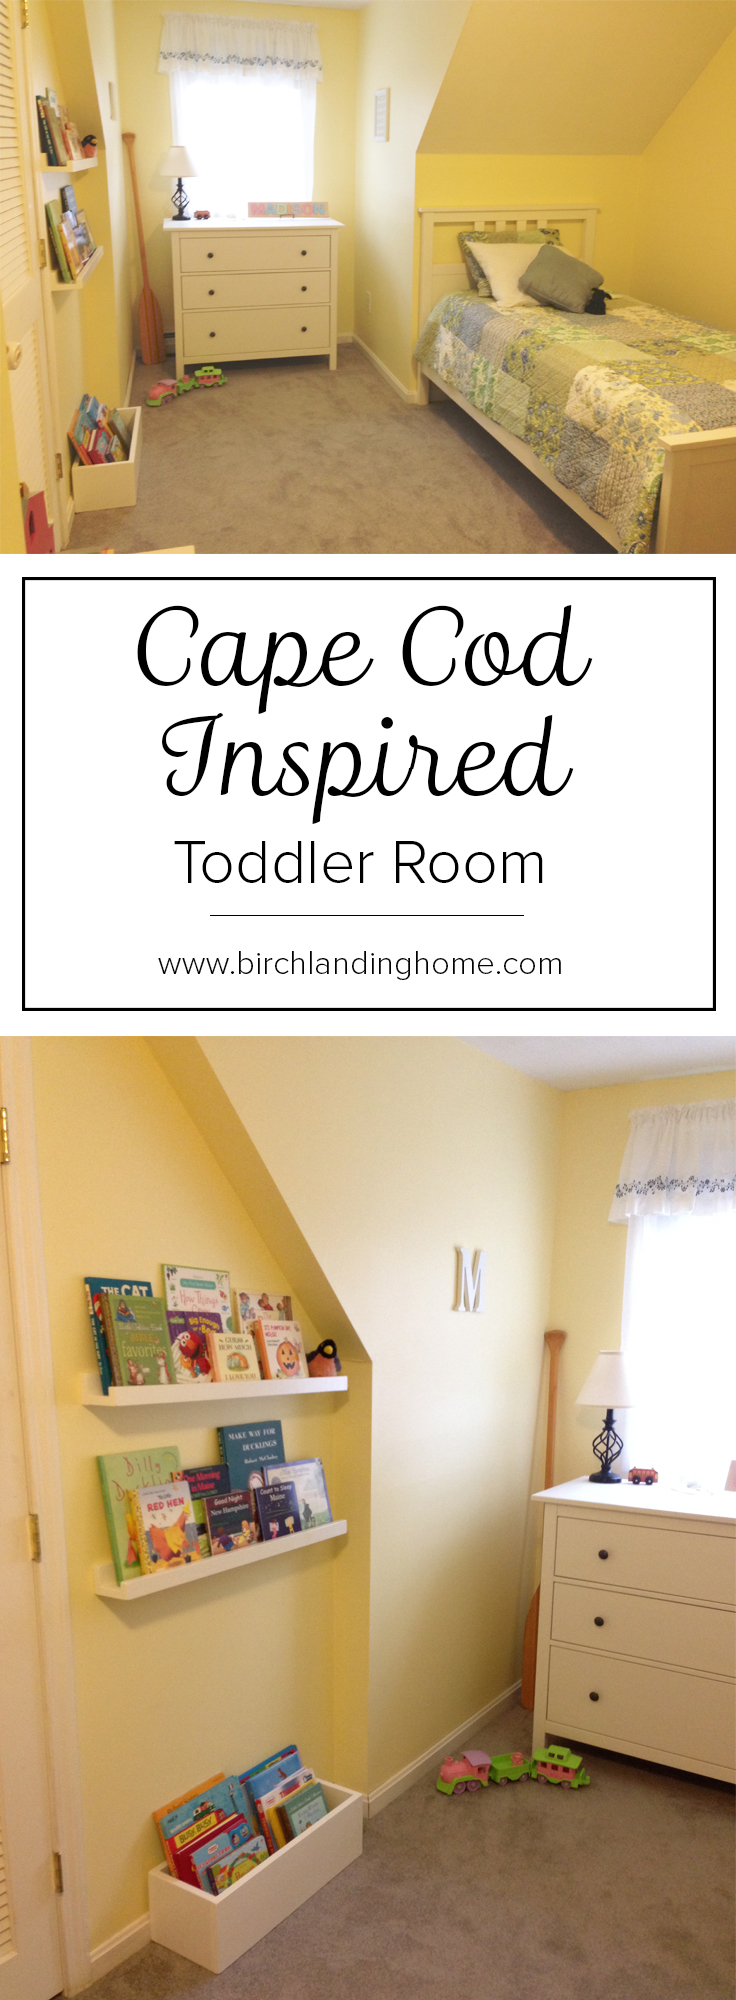 Cape Cod Inspired Toddler Room by Birch Landing Home